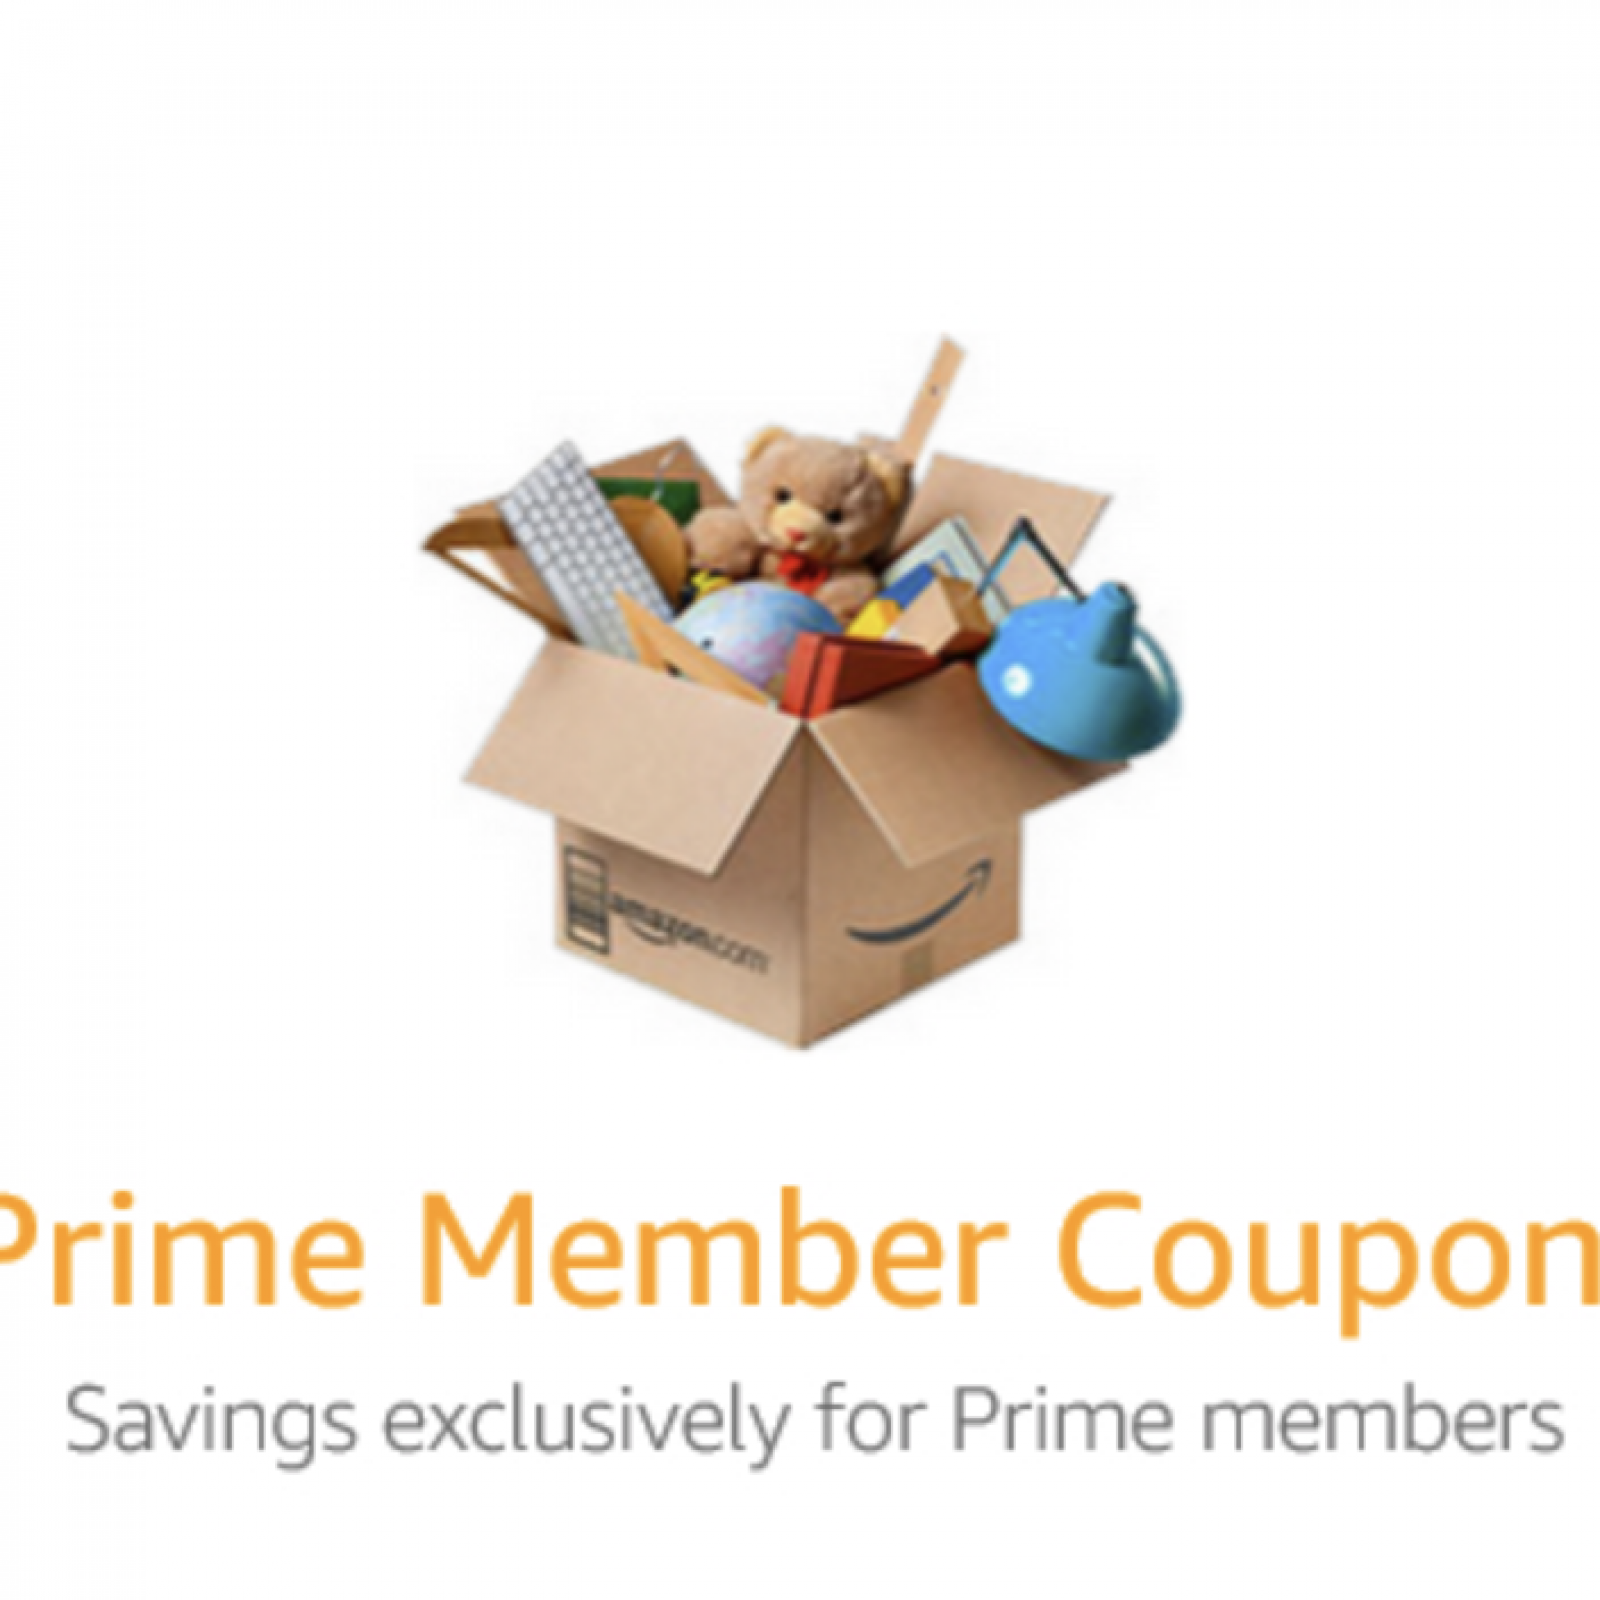 Early Amazon Prime Day Deals 2019: Great Discounts Prime Members Can